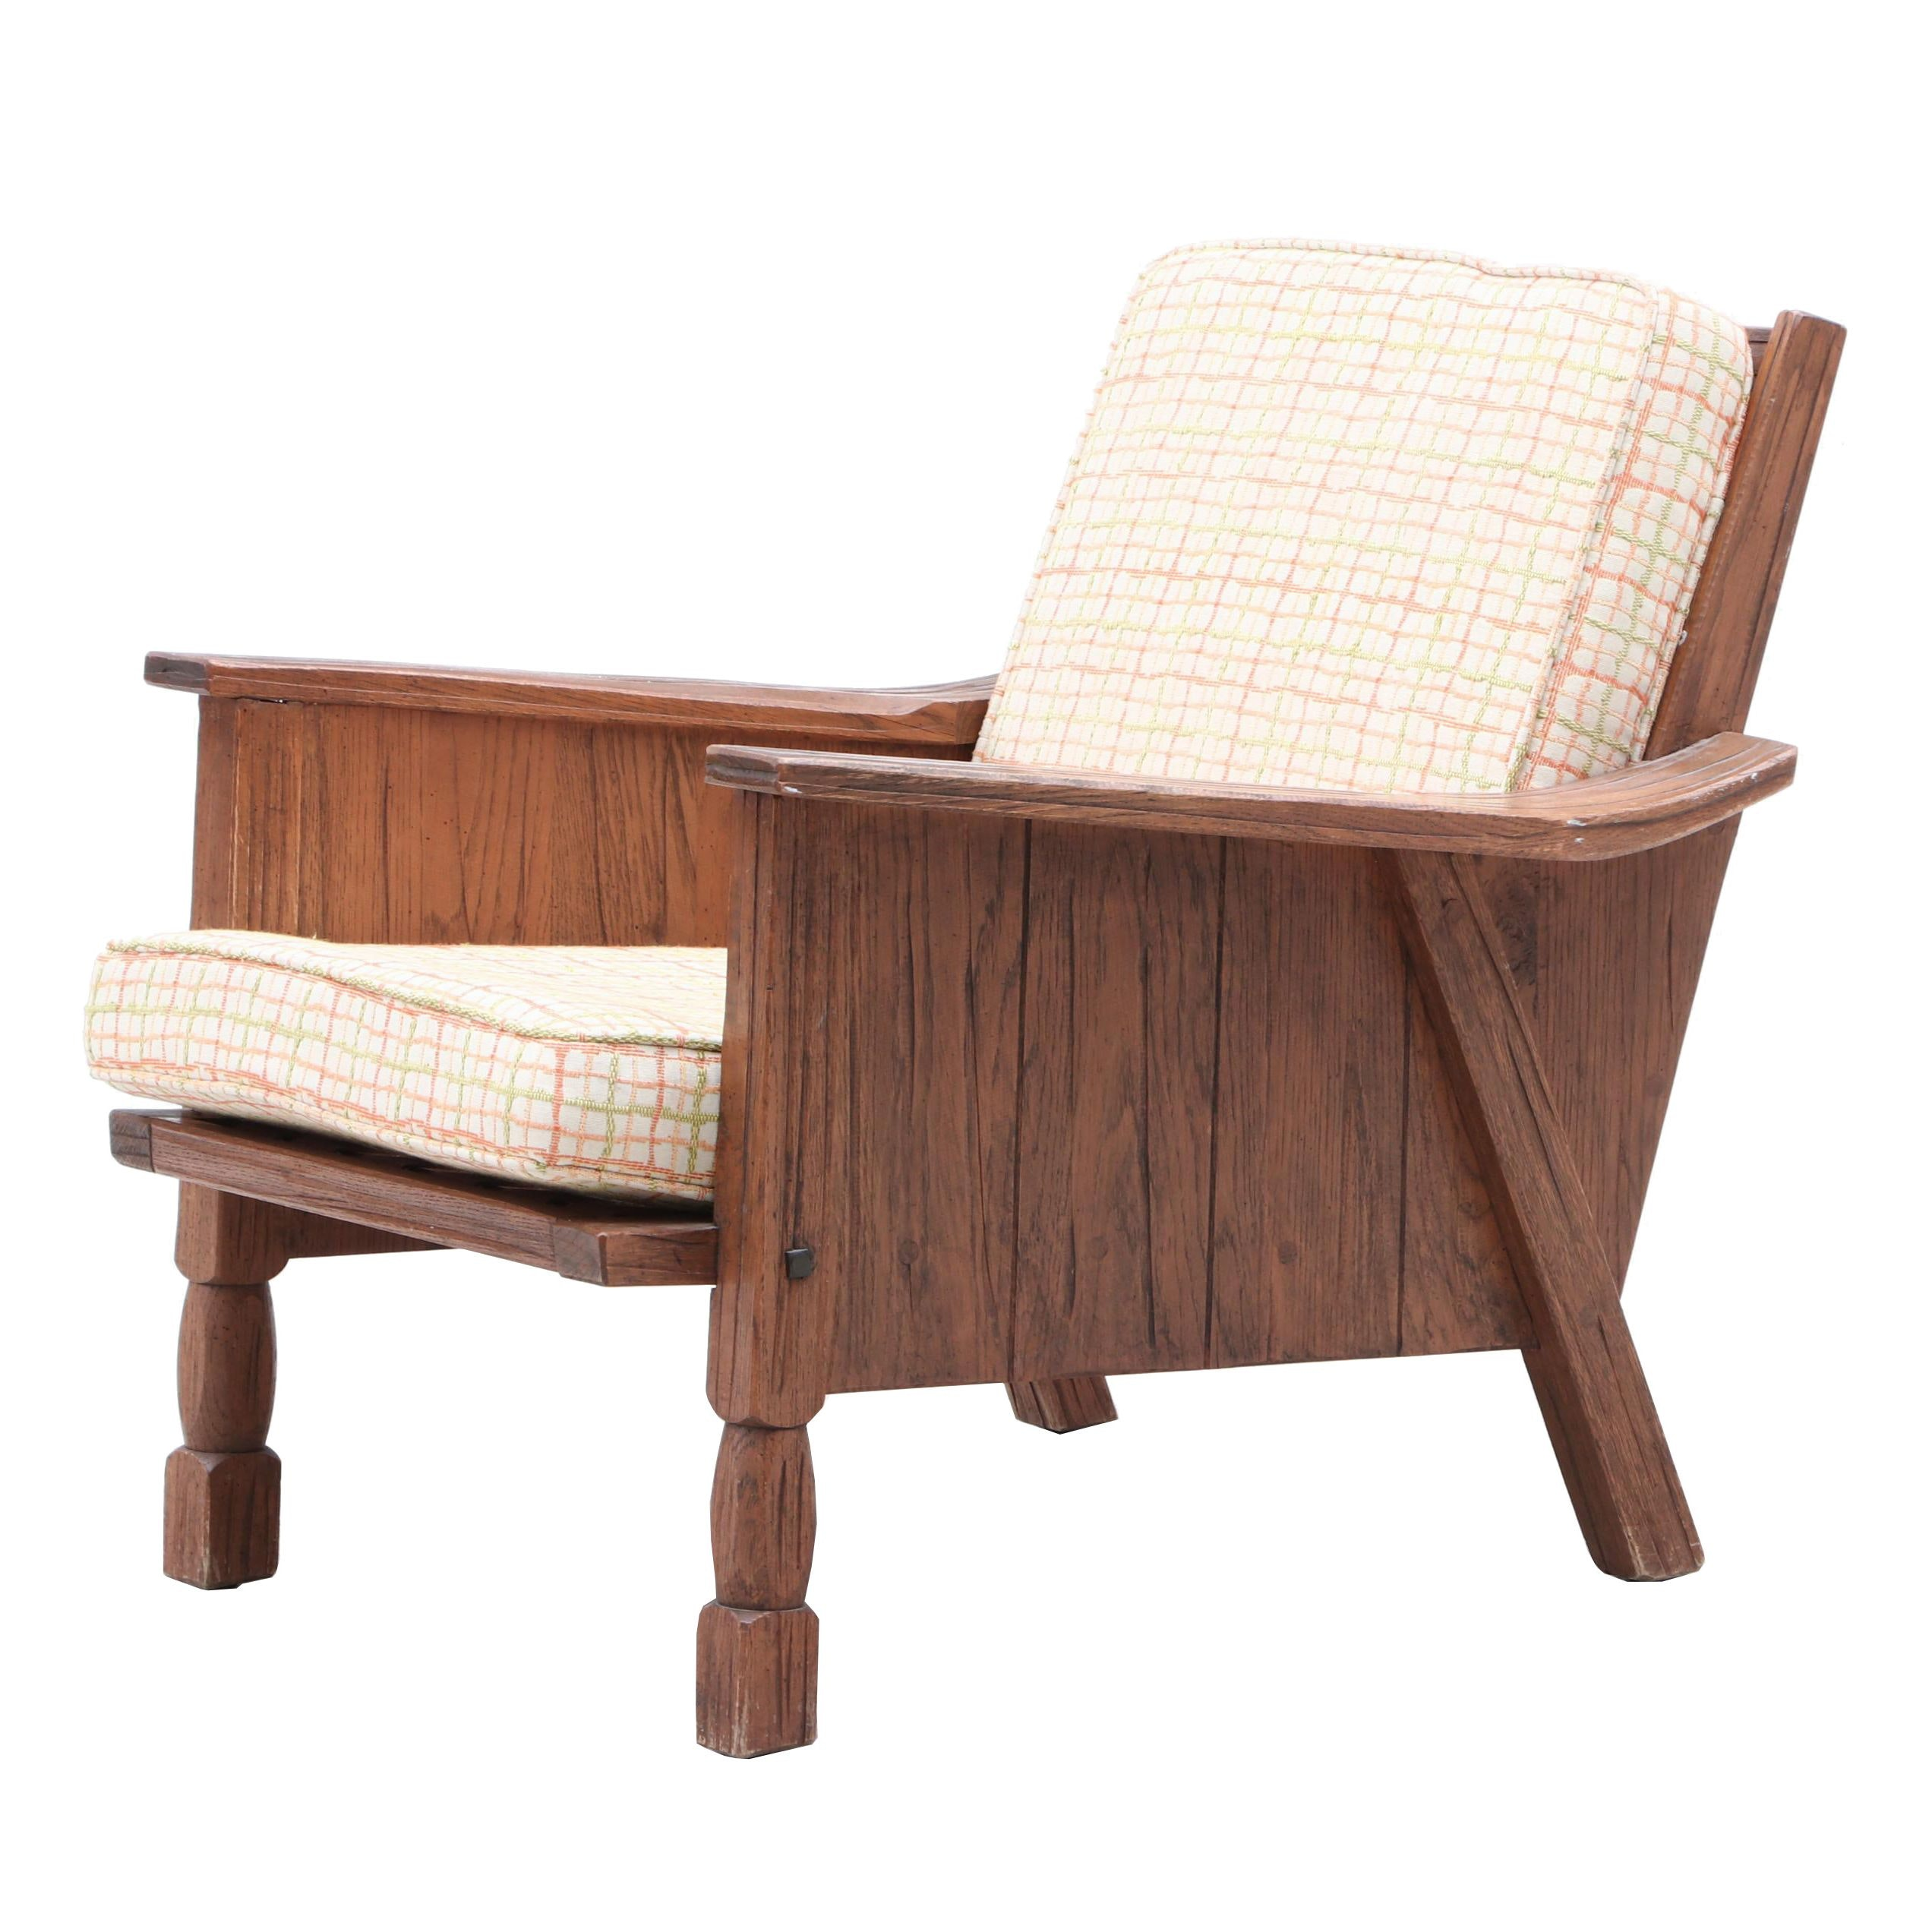 Rustic Oak Armchair, Middle 20th Century